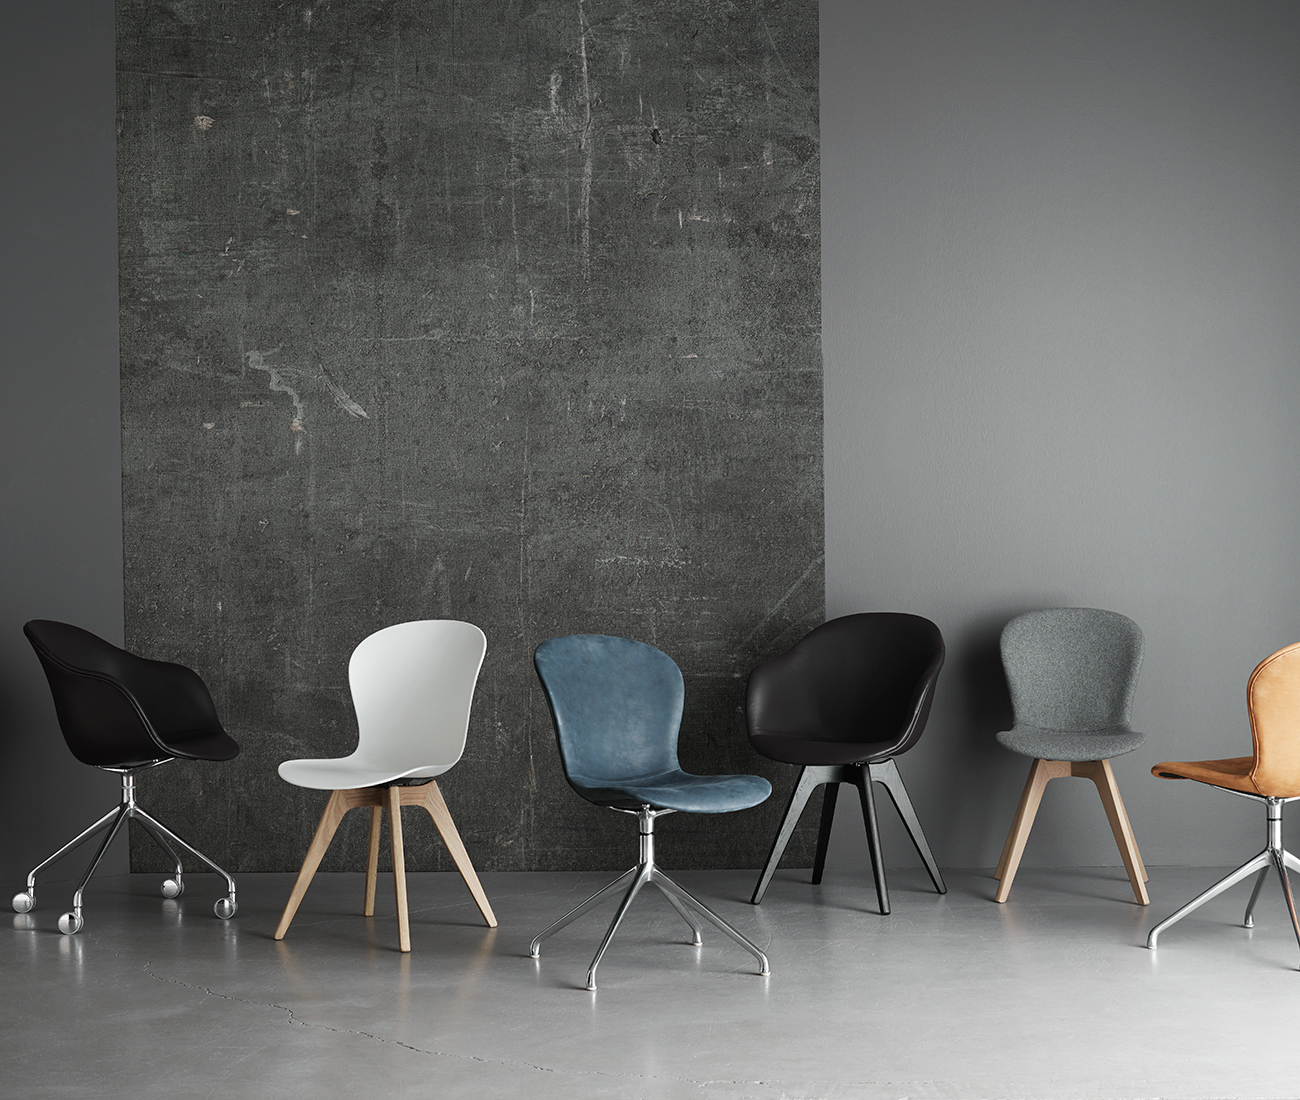 Adelaide chairs in different style and colour